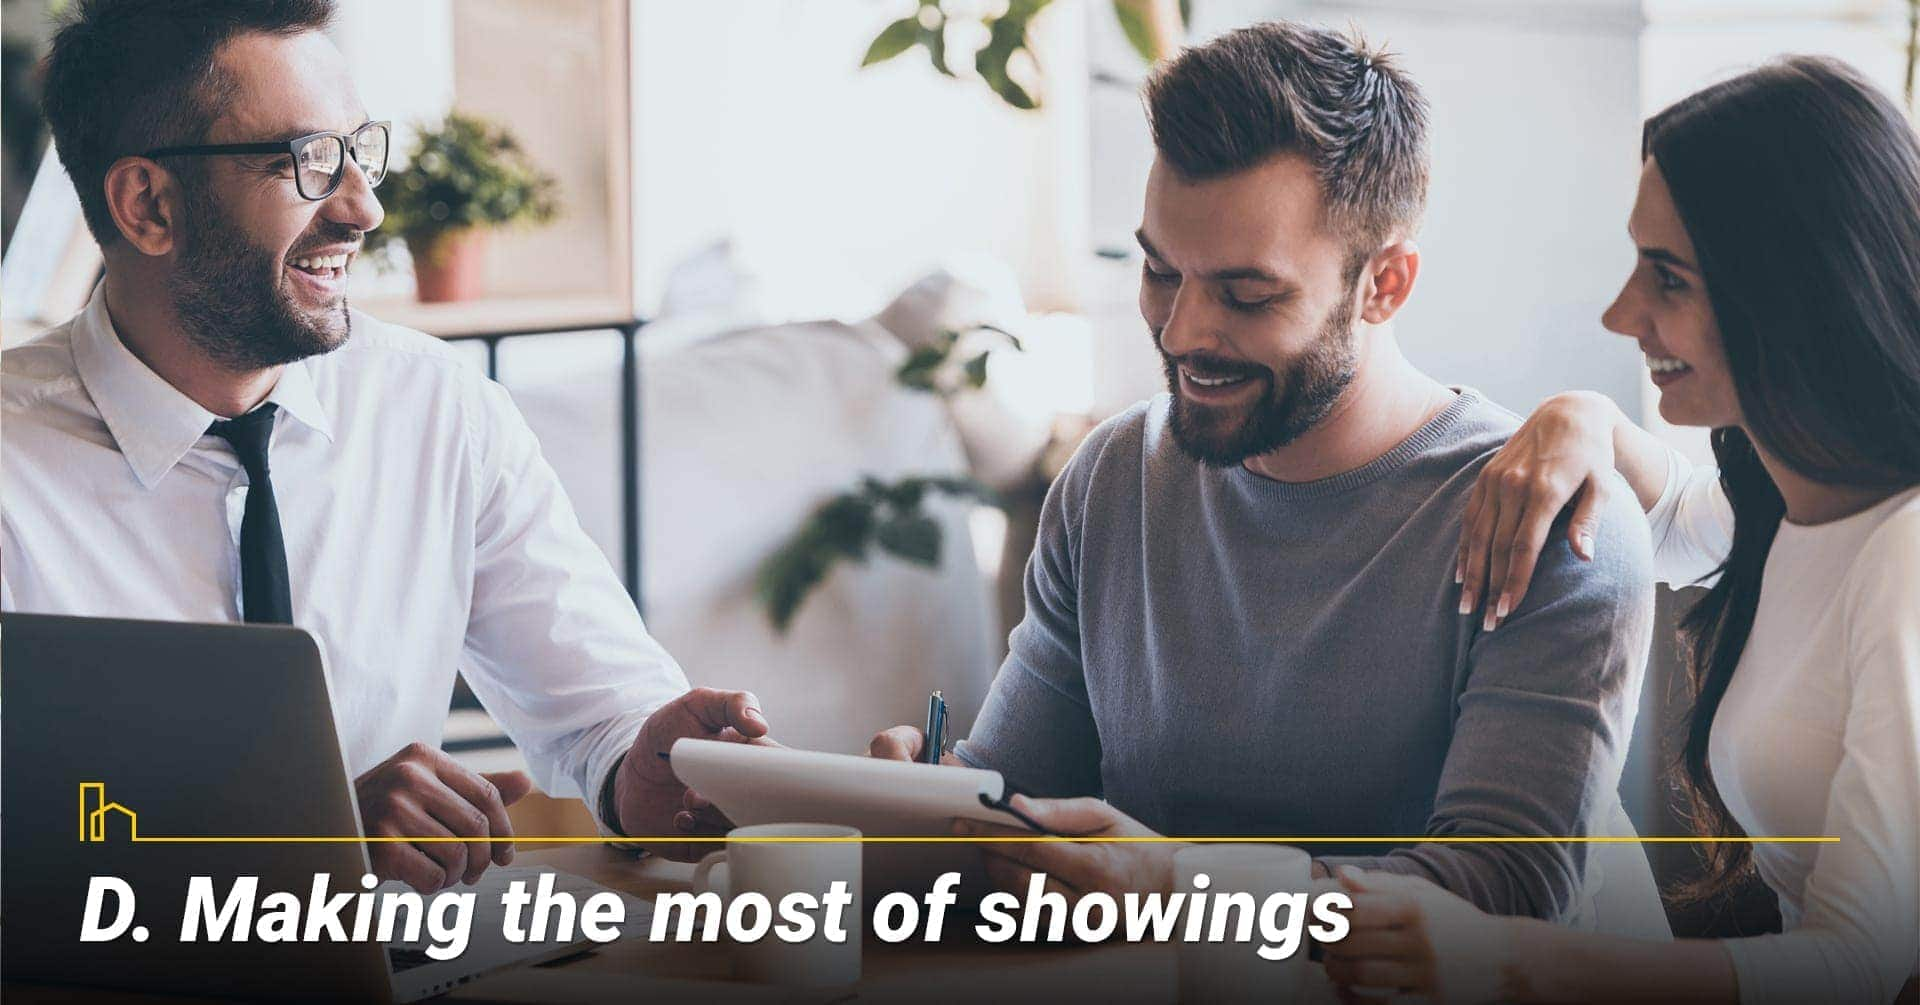 Making the most of showings